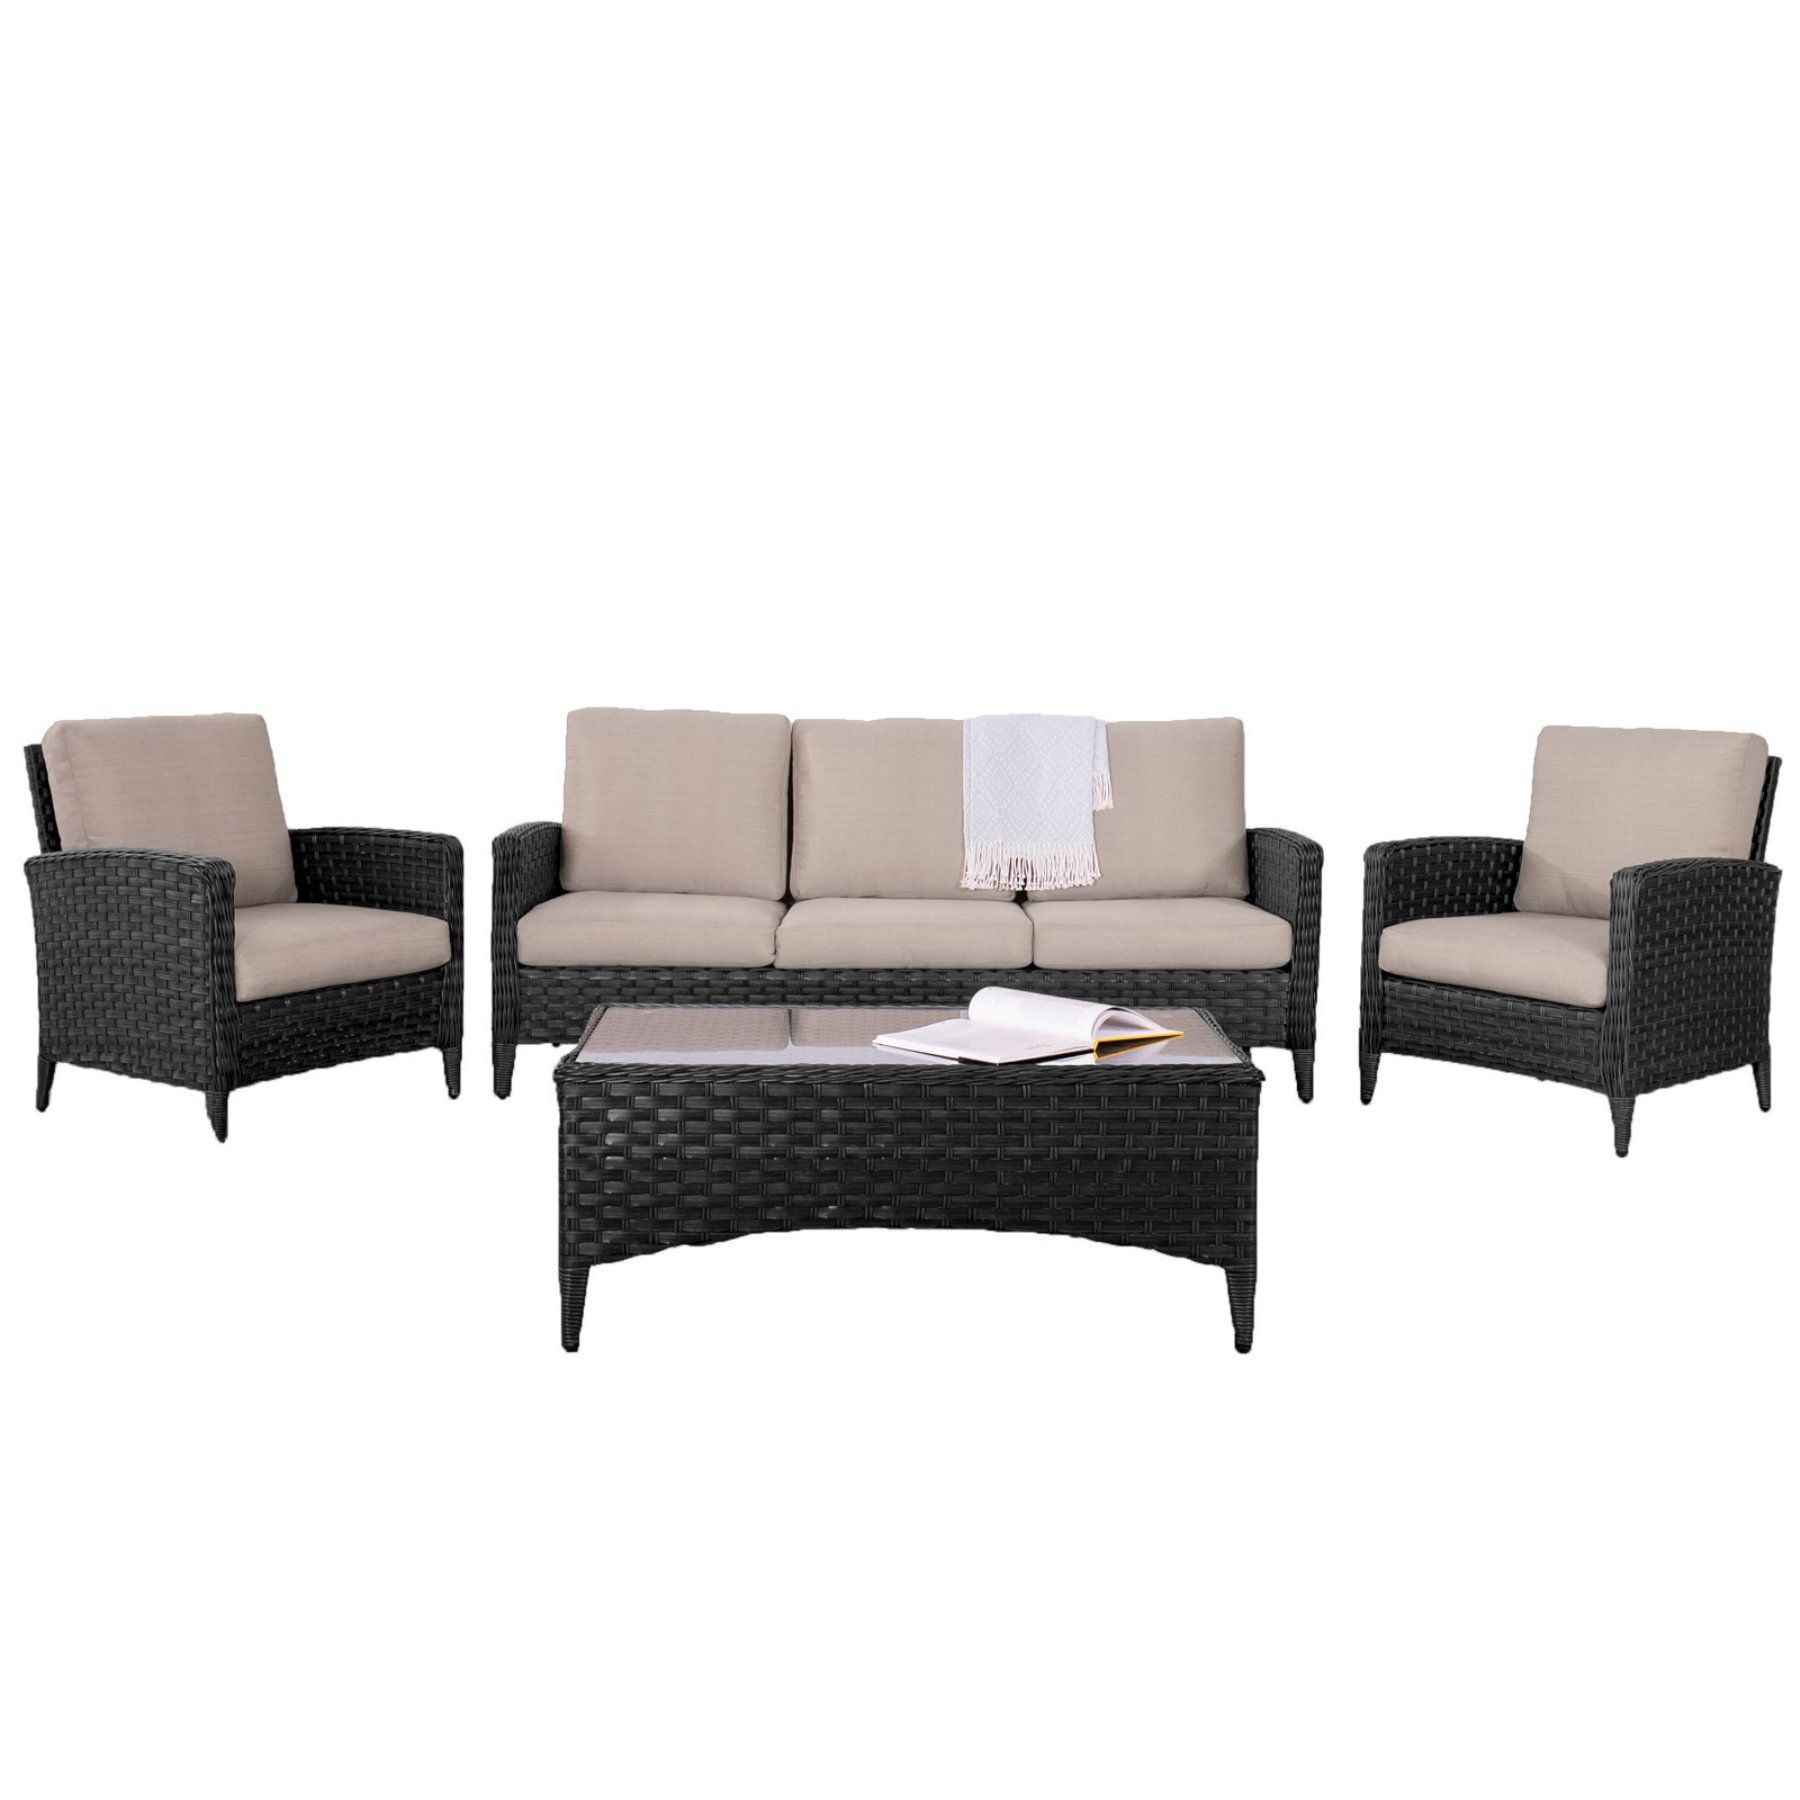 outdoor corliving parkview rattan wicker 4 piece wide sofa and chair rh pinterest com